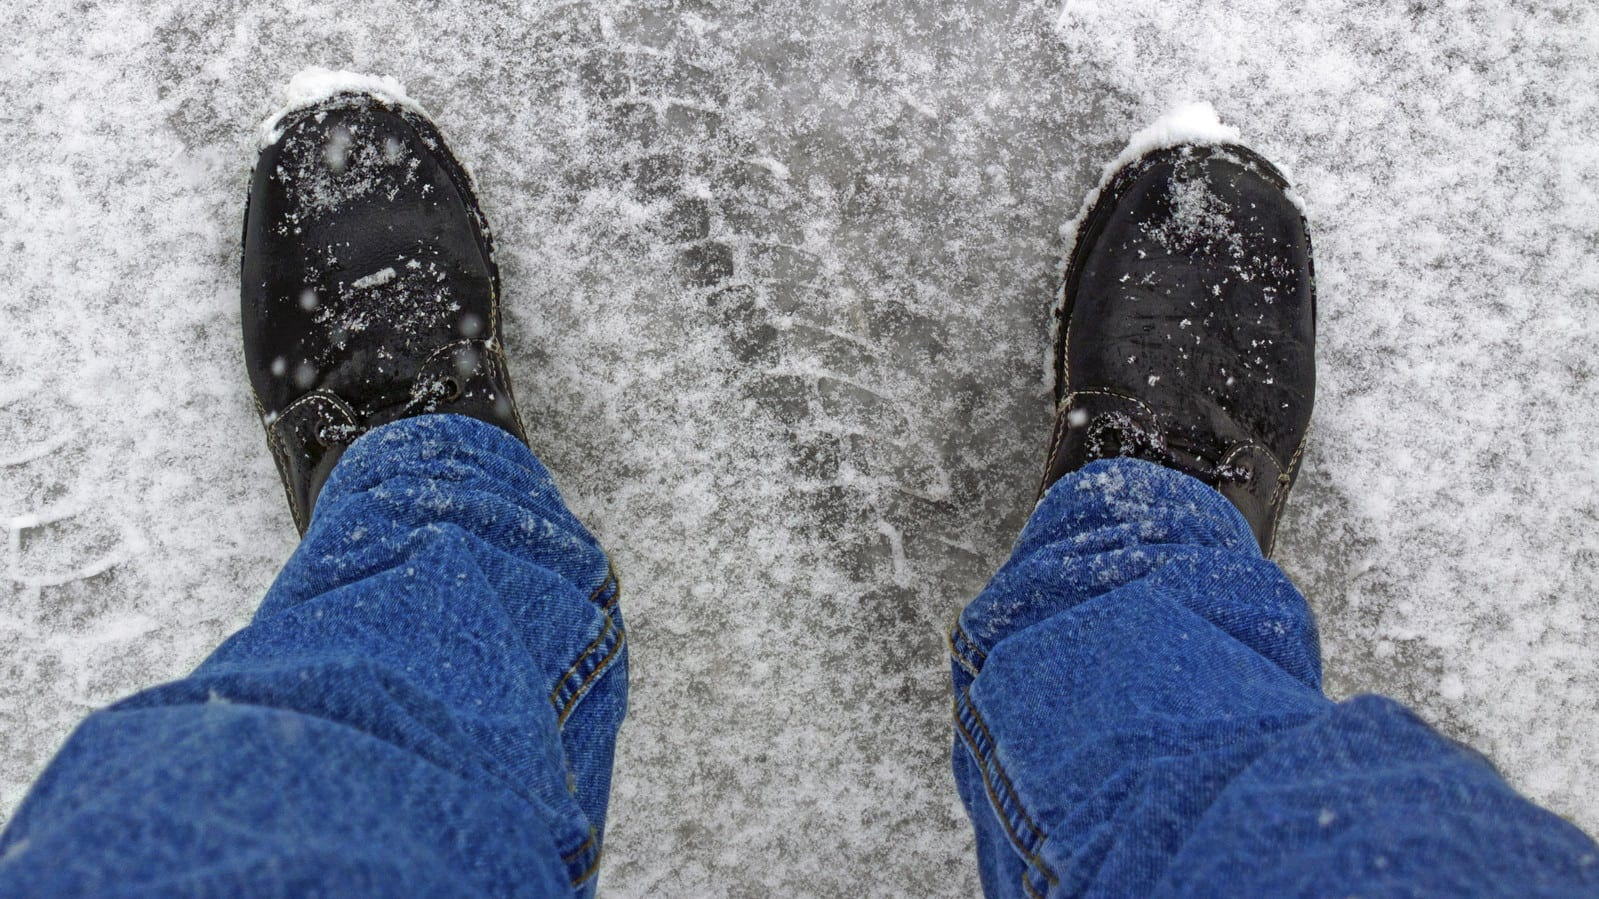 A man's shoes on a slippery icy road.